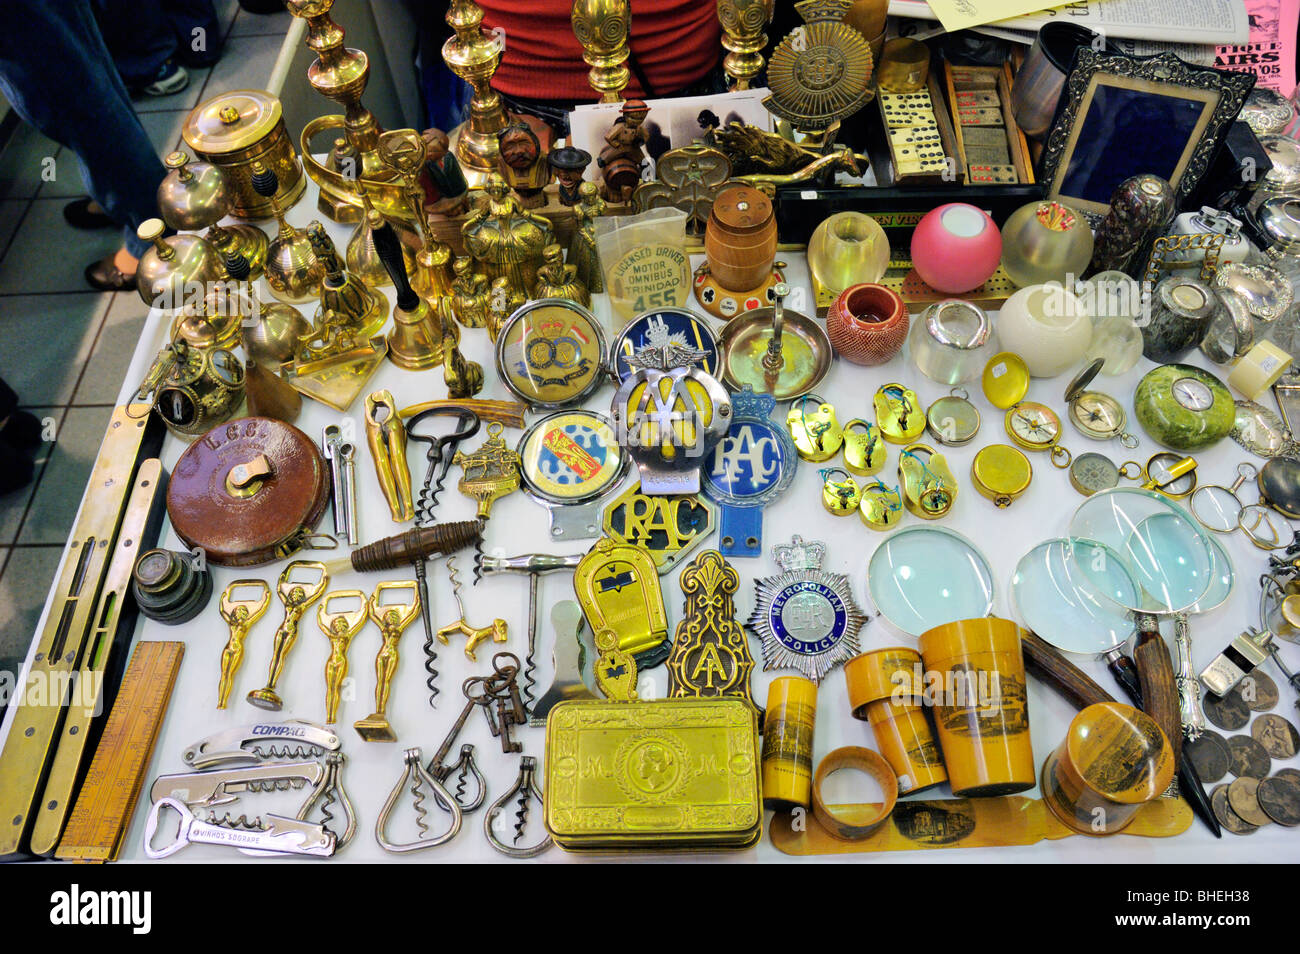 Collectables on a Portobello Road antique market stall, London, England. Items include bottle openers, corkscrews, - Stock Image